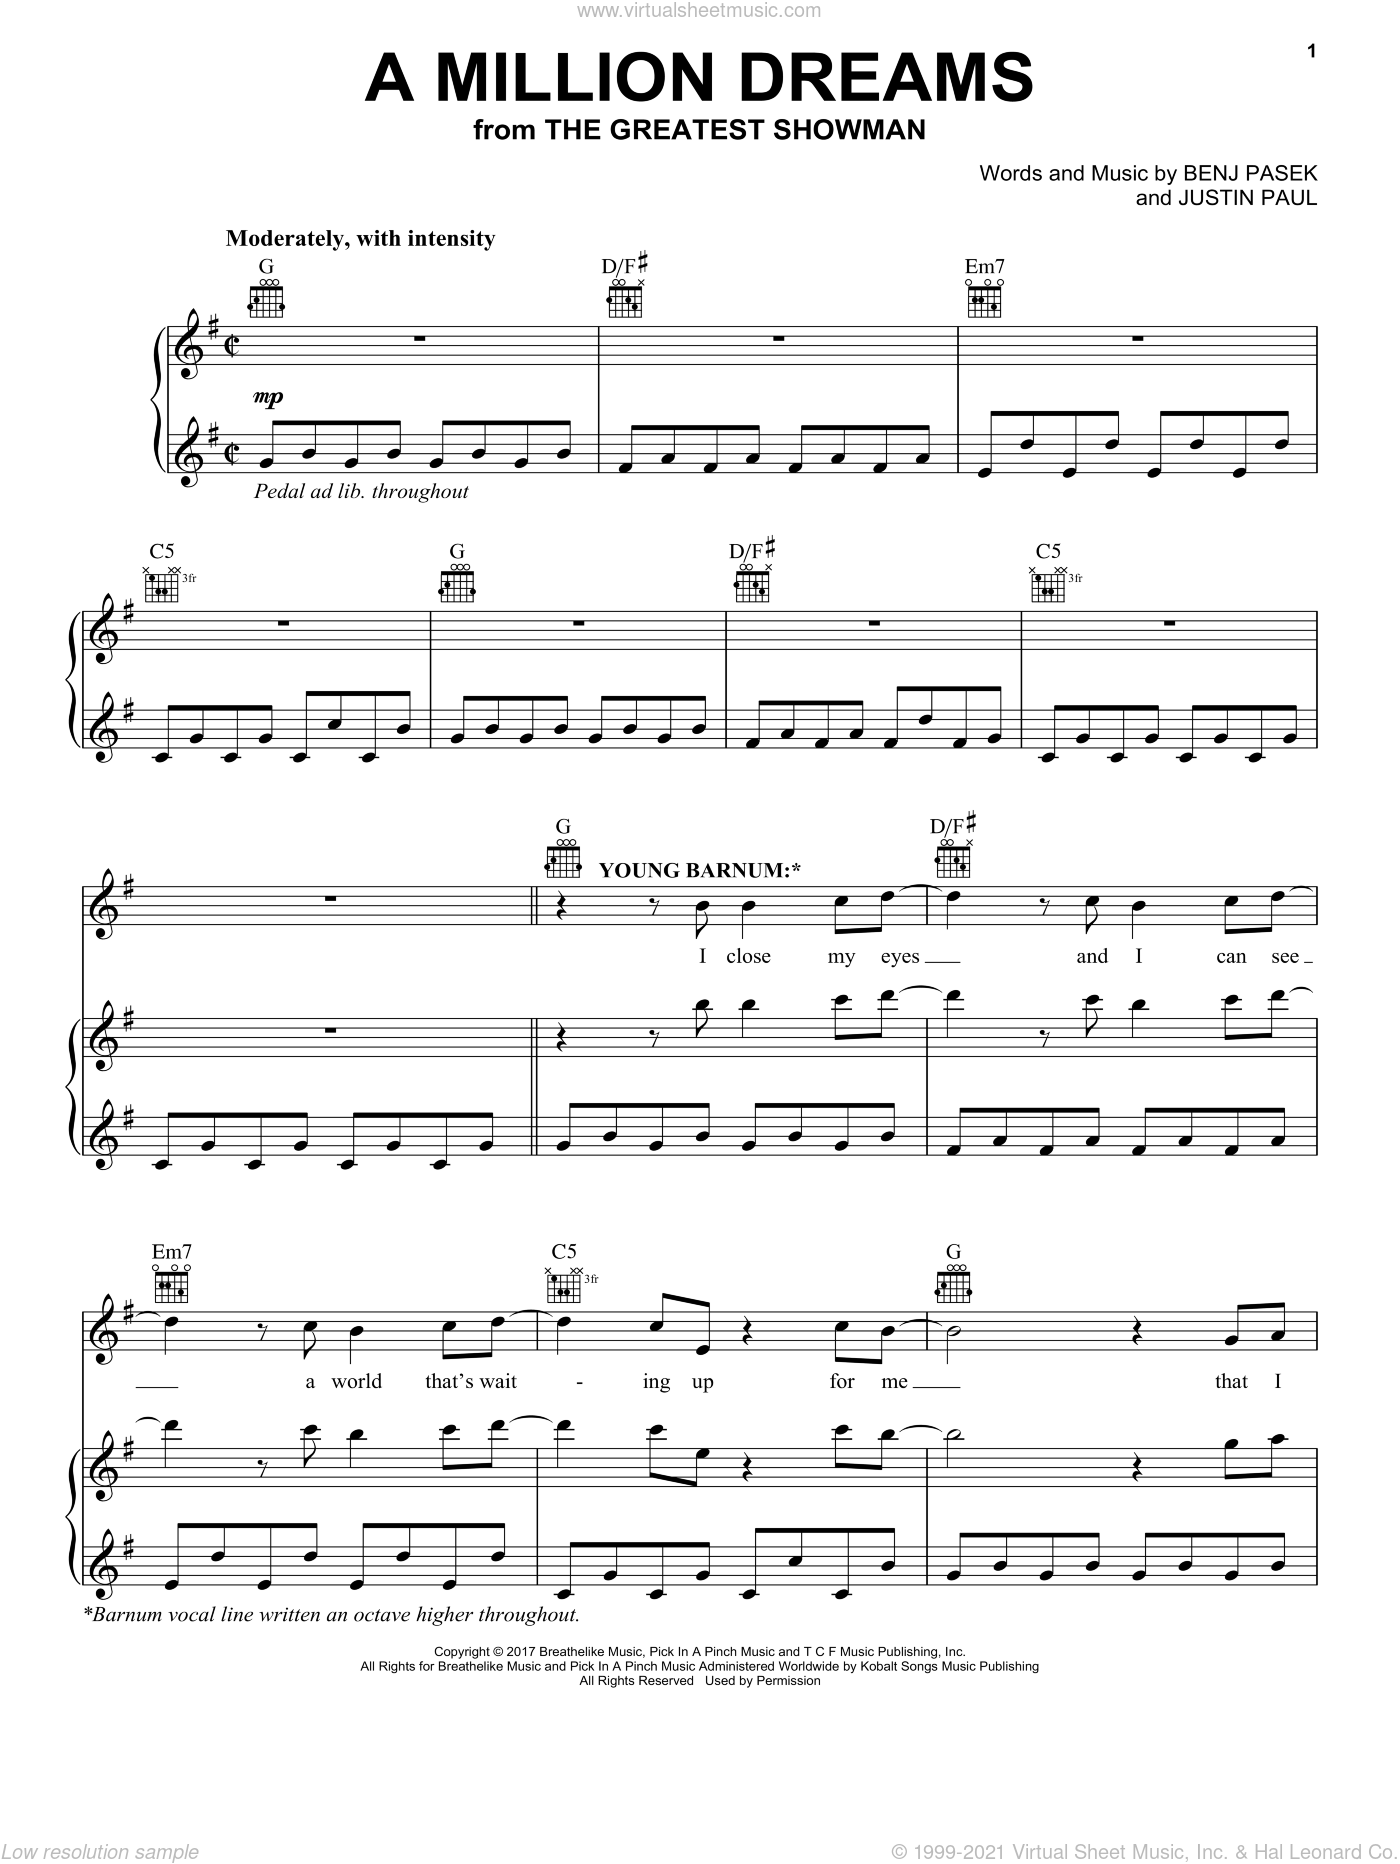 A Million Dreams (From The Greatest Showman) sheet music for voice, piano or guitar by Pasek & Paul, Benj Pasek and Justin Paul, intermediate skill level